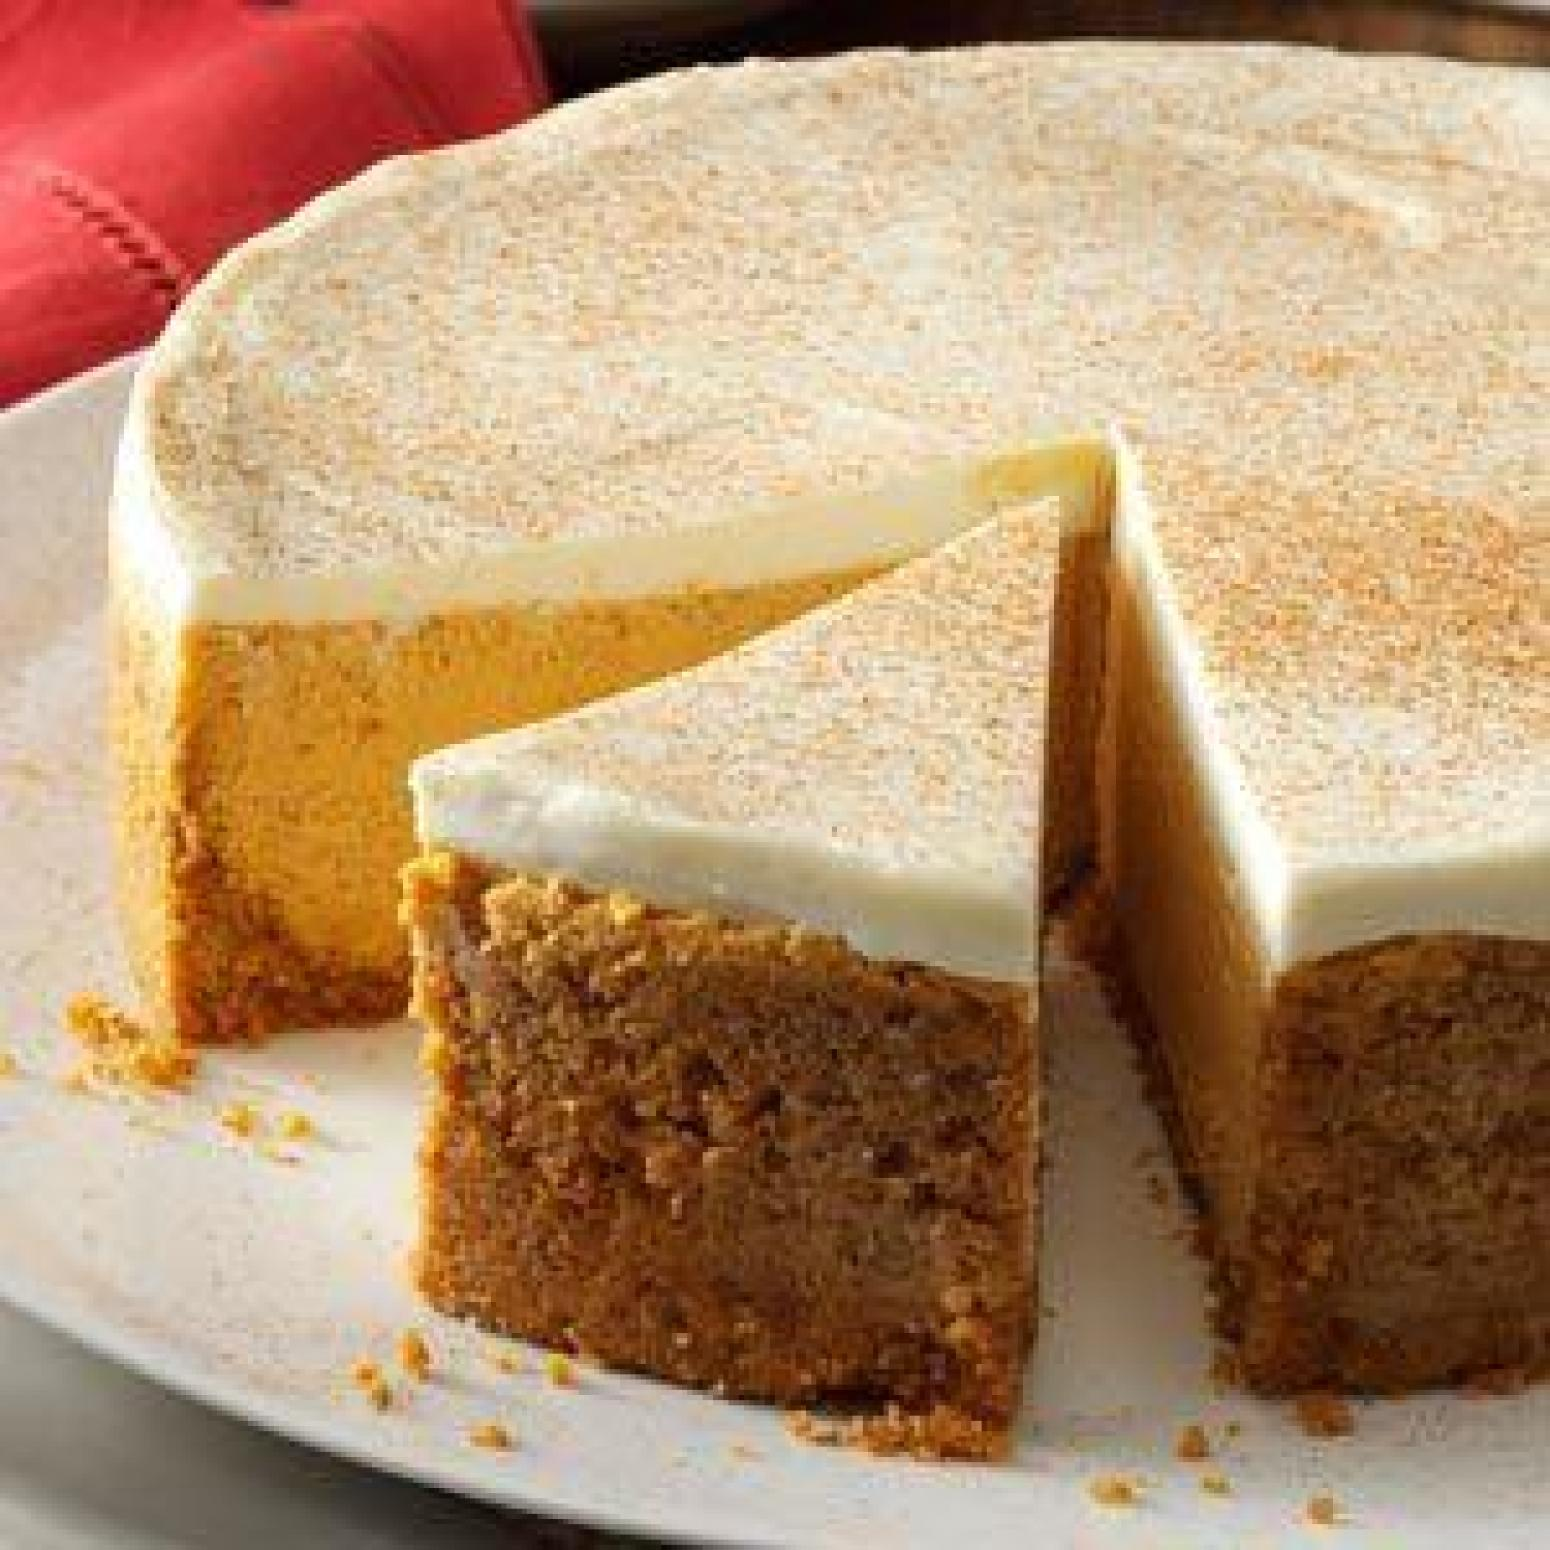 Pumpkin Cheesecake With Sour Cream Topping Recipe | Just A ...